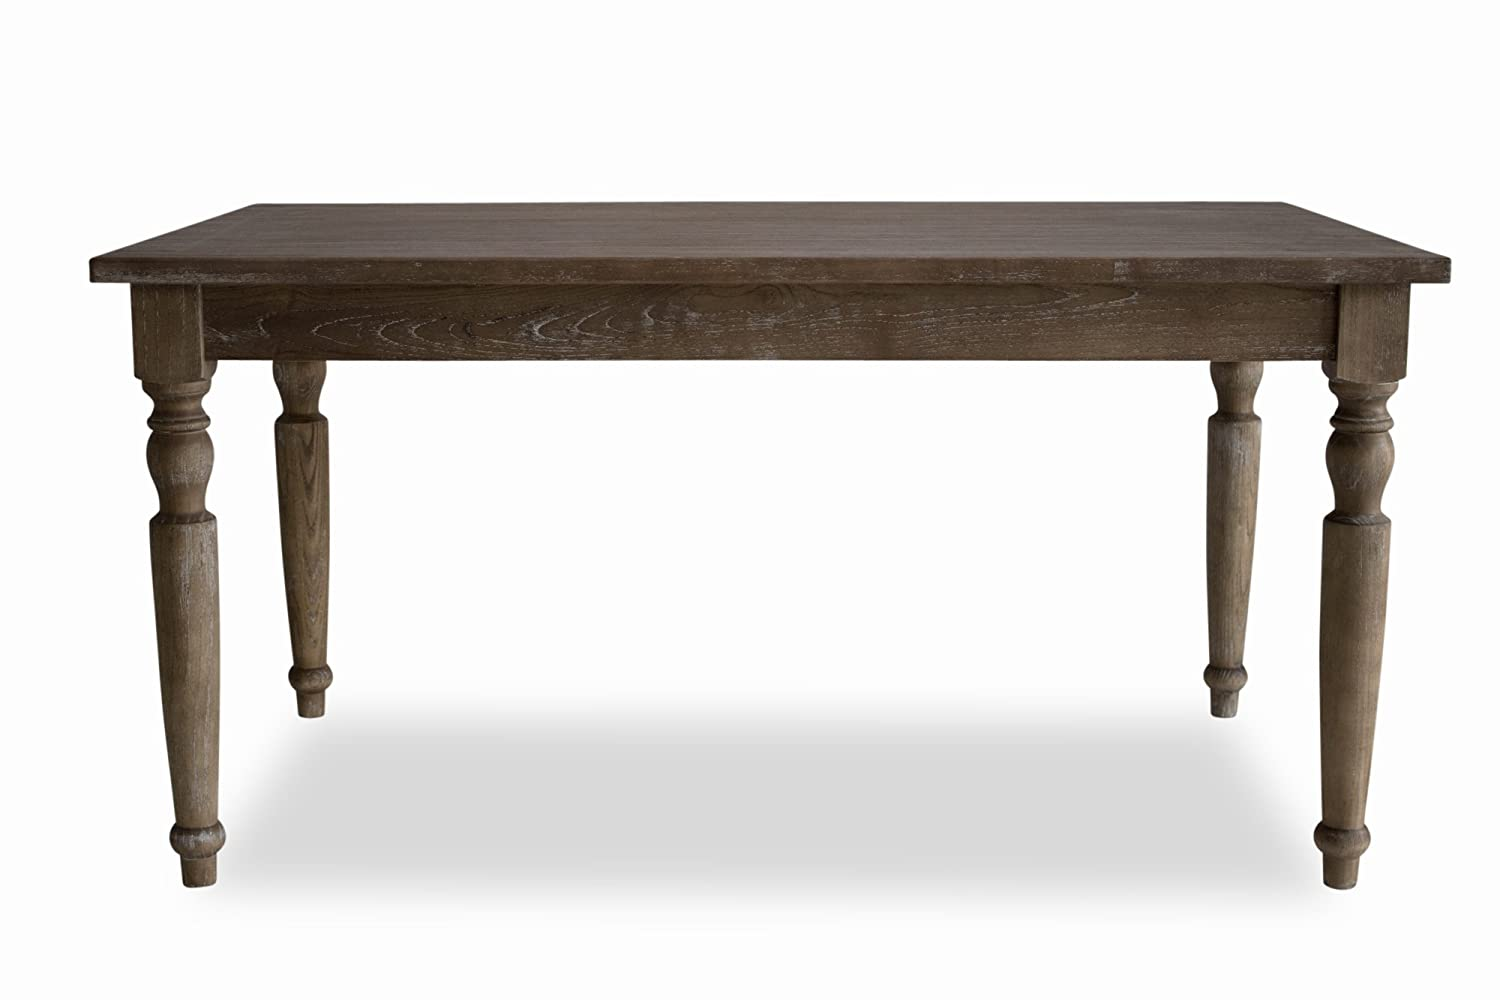 Country French rustic dining tables are hard to resist, and this EDLOE FINCH - farmhouse French example made of solid Elm is lovely and well priced!